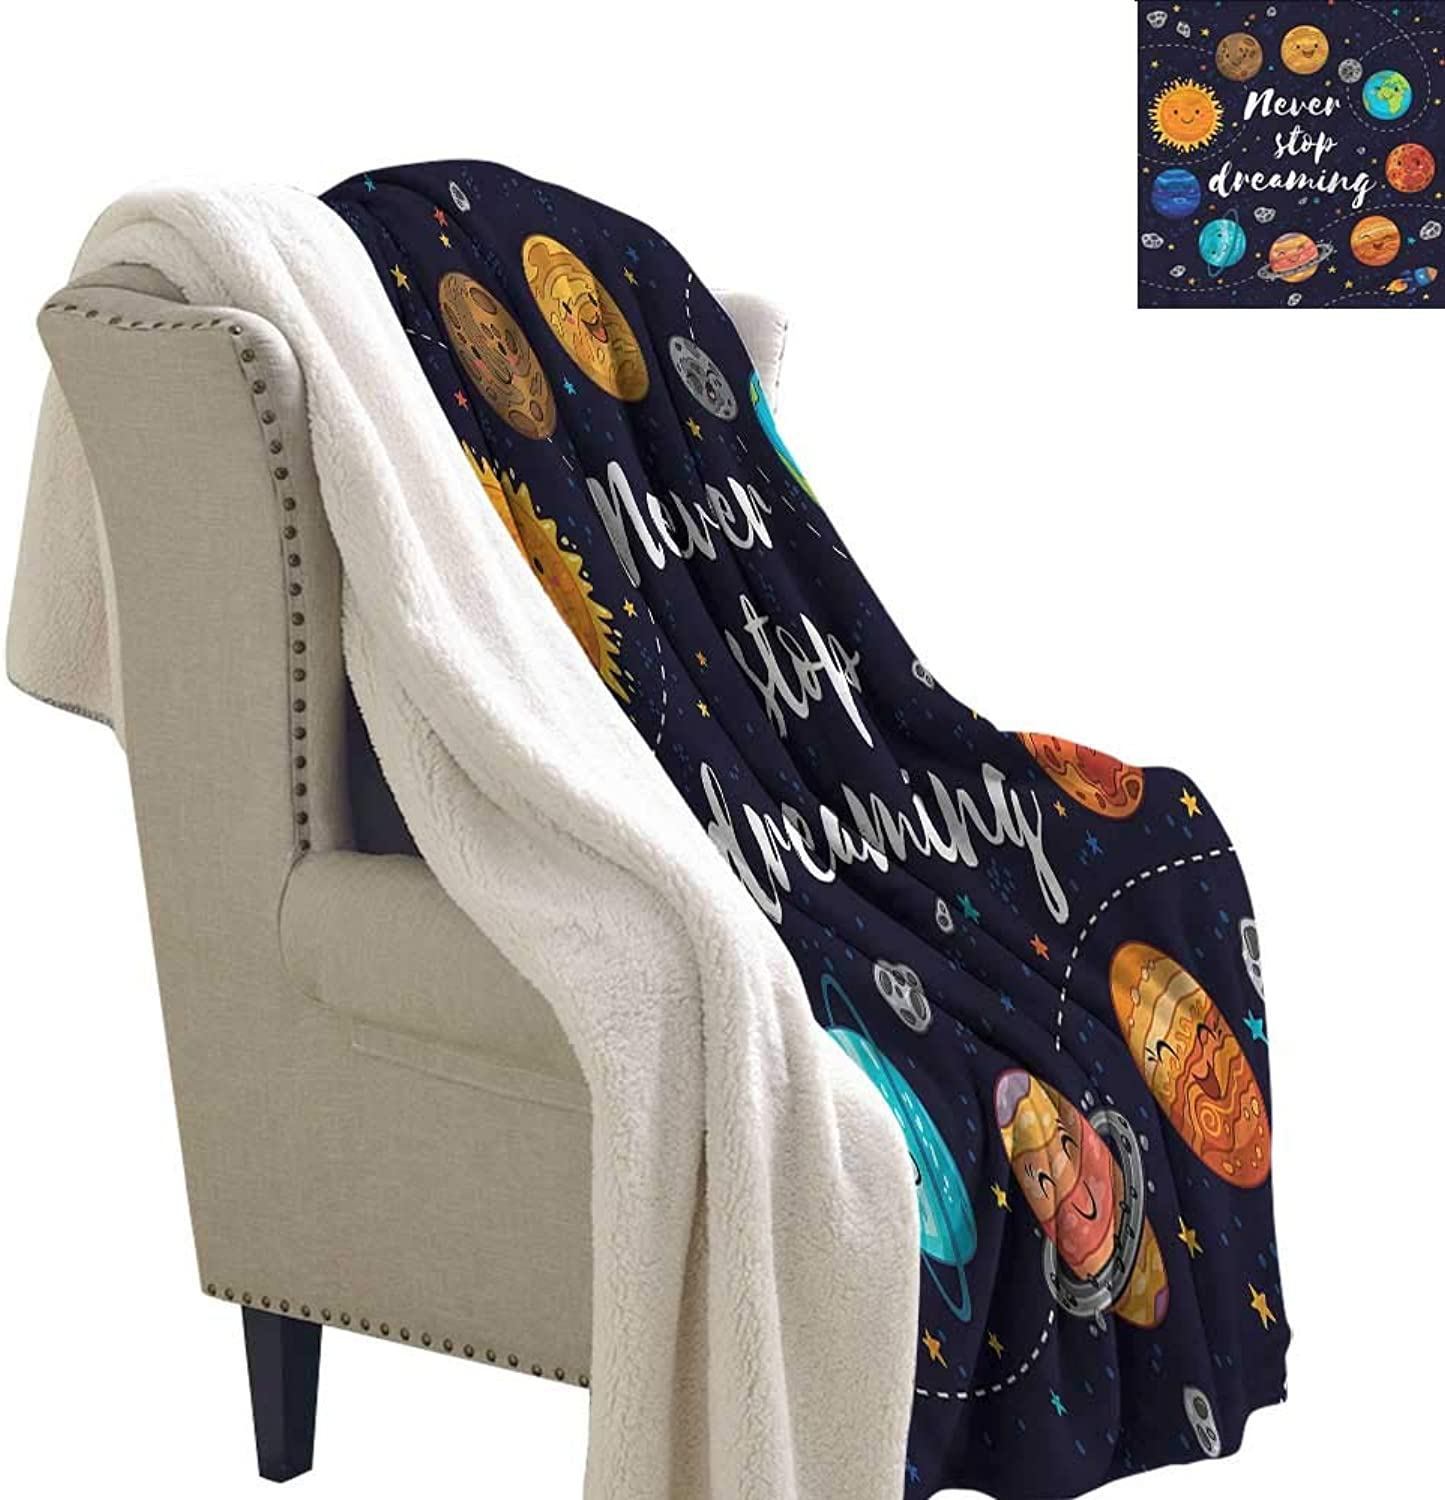 Beihai1Sun Quote Blanket Small Quilt Outer Space Star Cluster Sherpa Throws 60x32 Inch